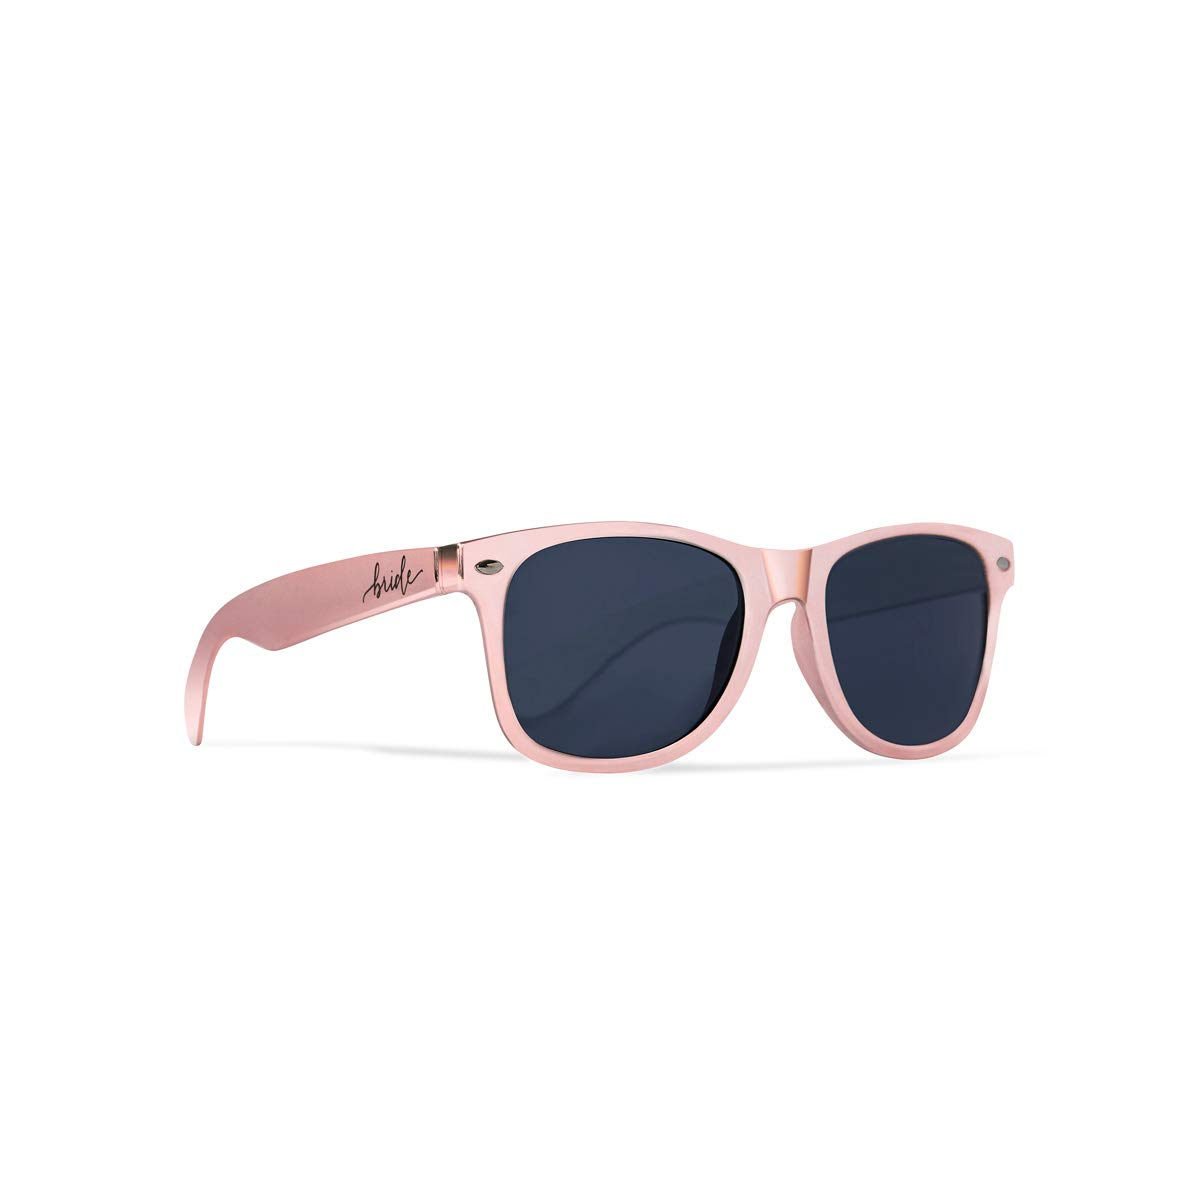 Bride Tribe + Bride Sunglasses - Gifts, Favors, Accessories for Bachelorette Parties, Weddings, and Bridal Showers (11 Piece Set, Rose Gold - Bride Tribe)